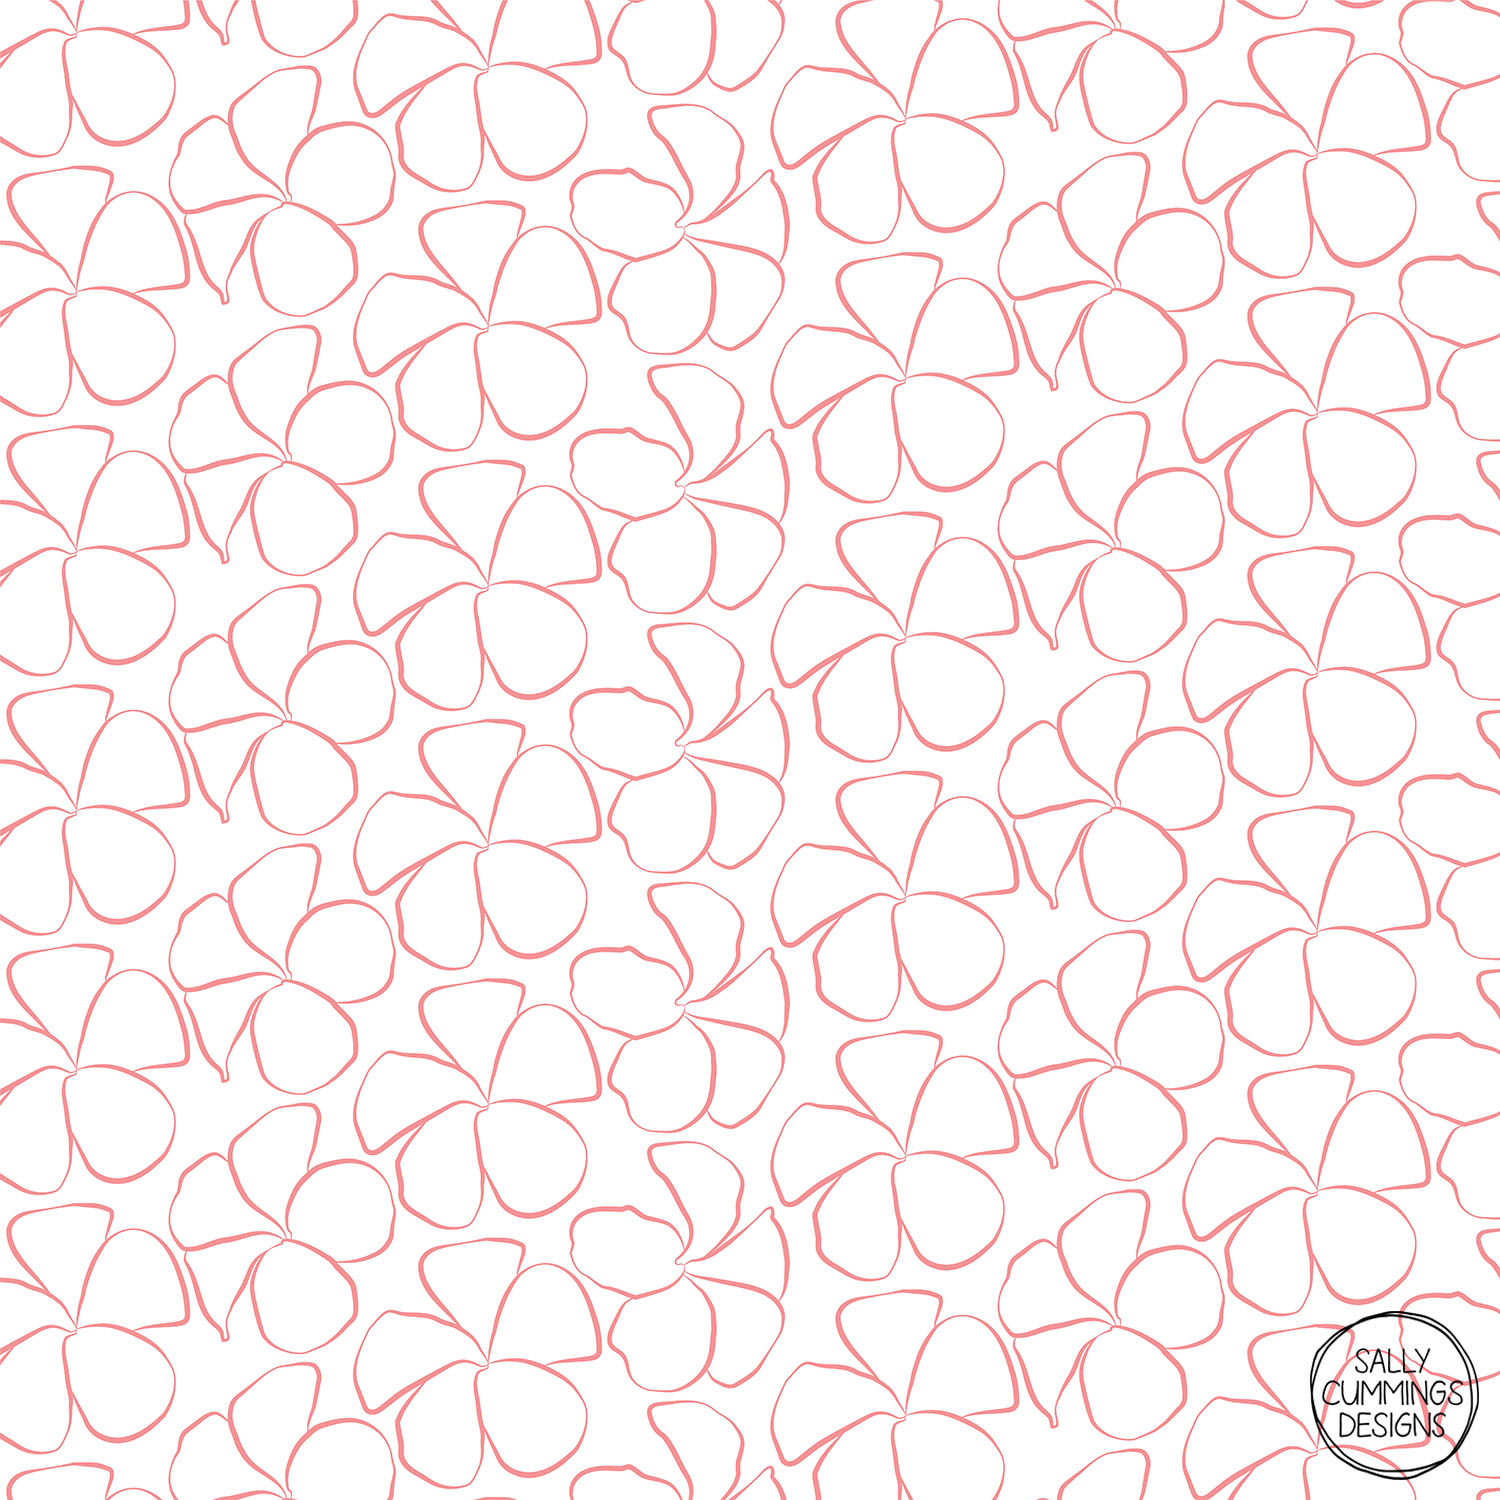 Sally Cummings Designs - Sweet Frangipani (Salmon Pink on White)